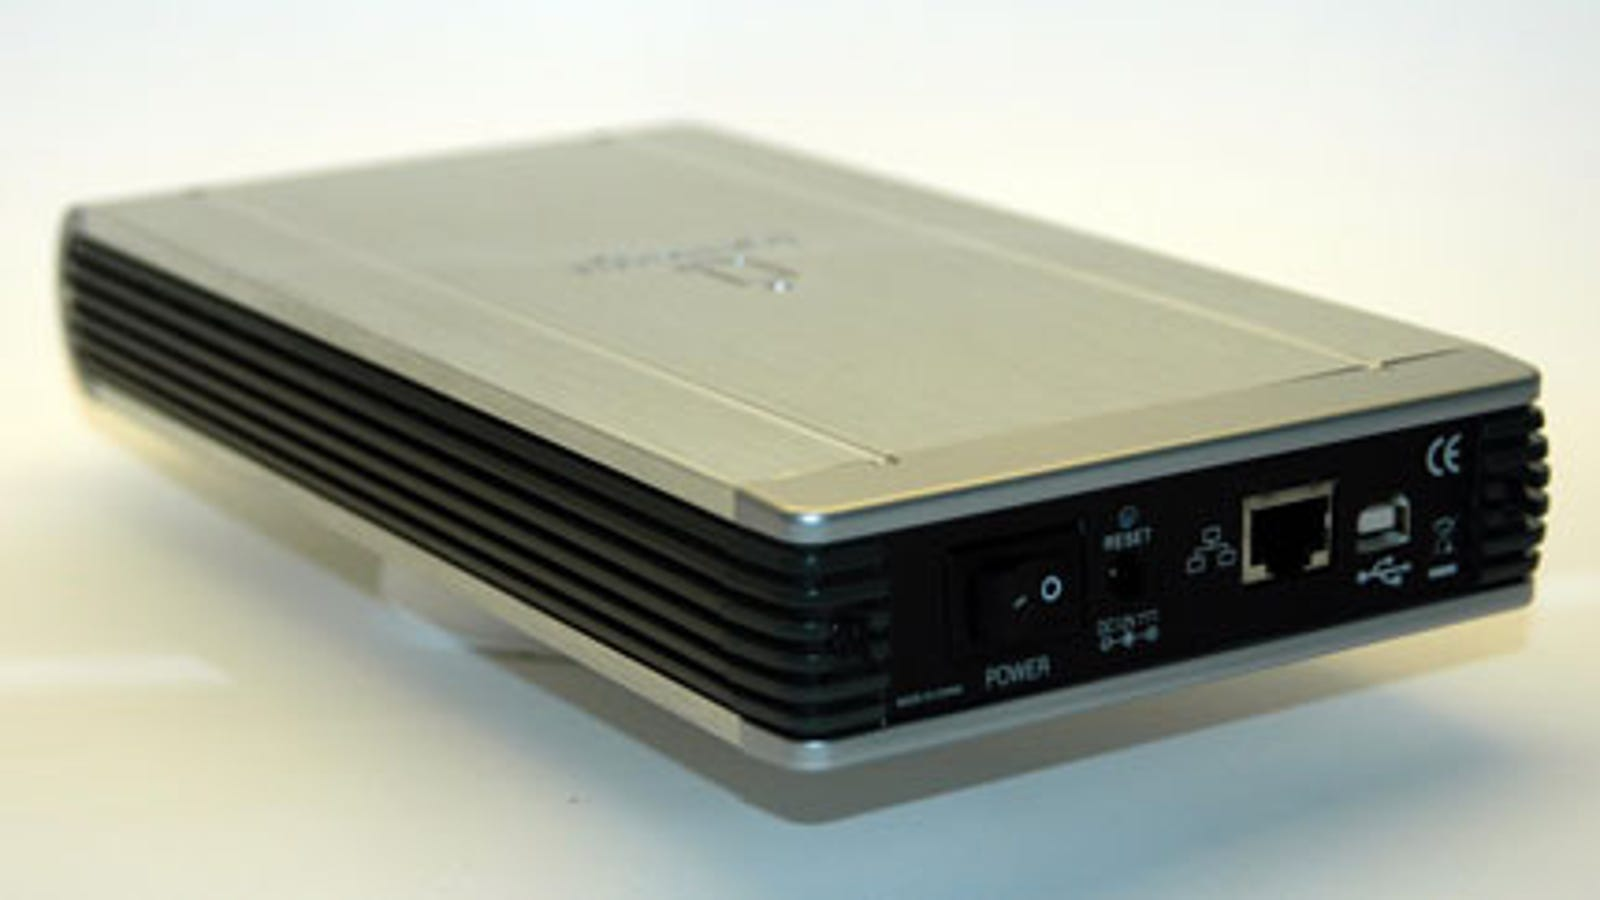 Run Your Own Cloud Server With Iomega's New Home Media Drive [Review]